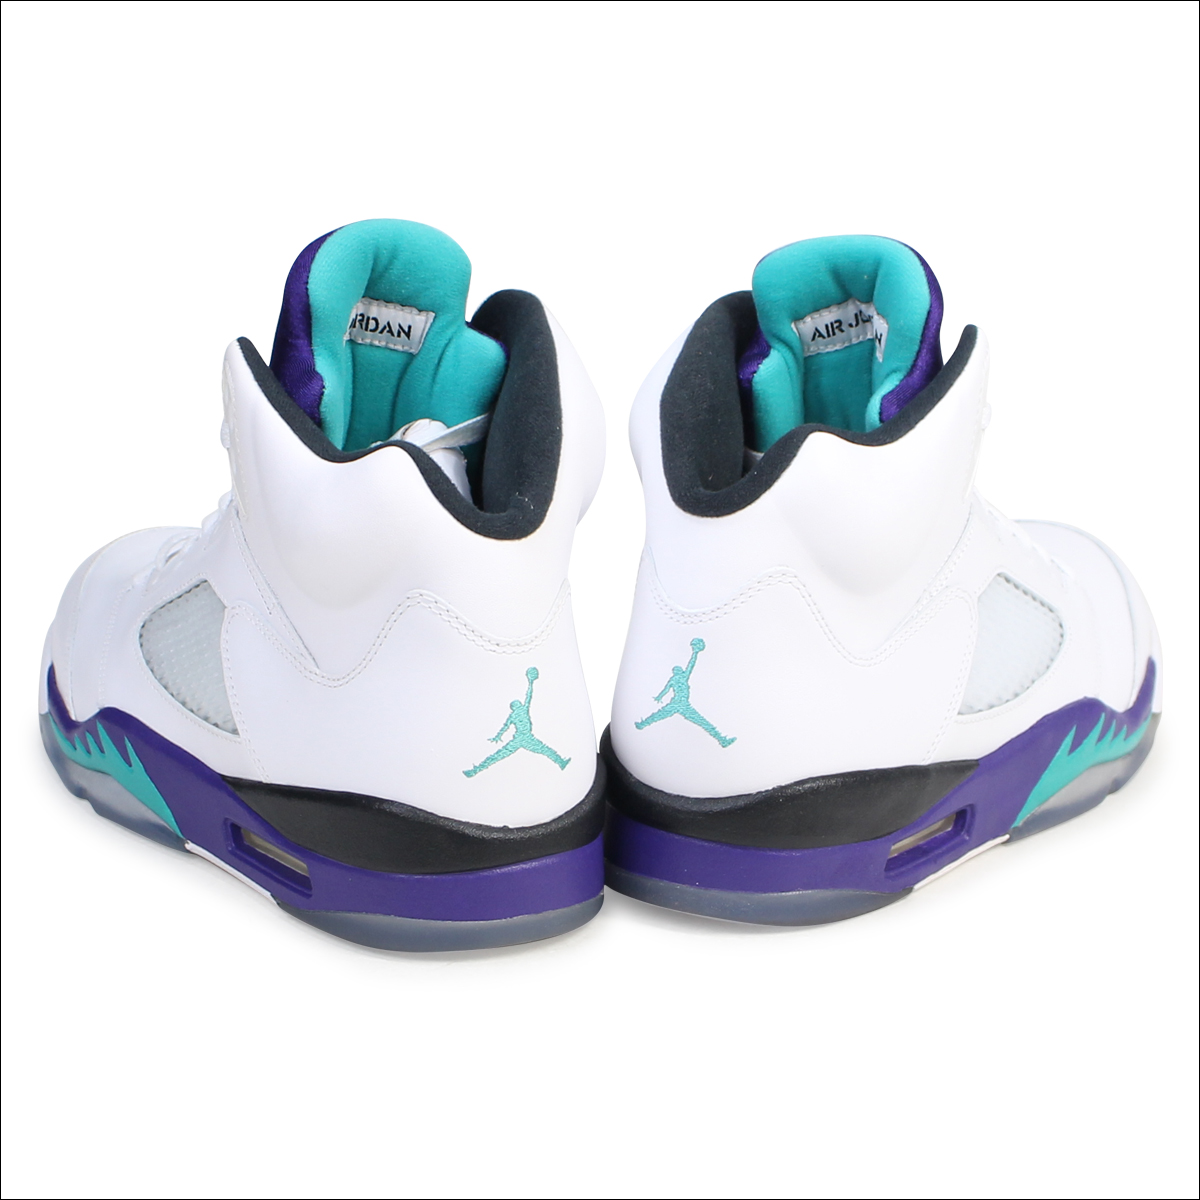 sale retailer 718e3 6271e NIKE Nike Air Jordan 5 nostalgic sneakers AIR JORDAN 5 RETRO GRAPE  136,027-108 men's shoes white